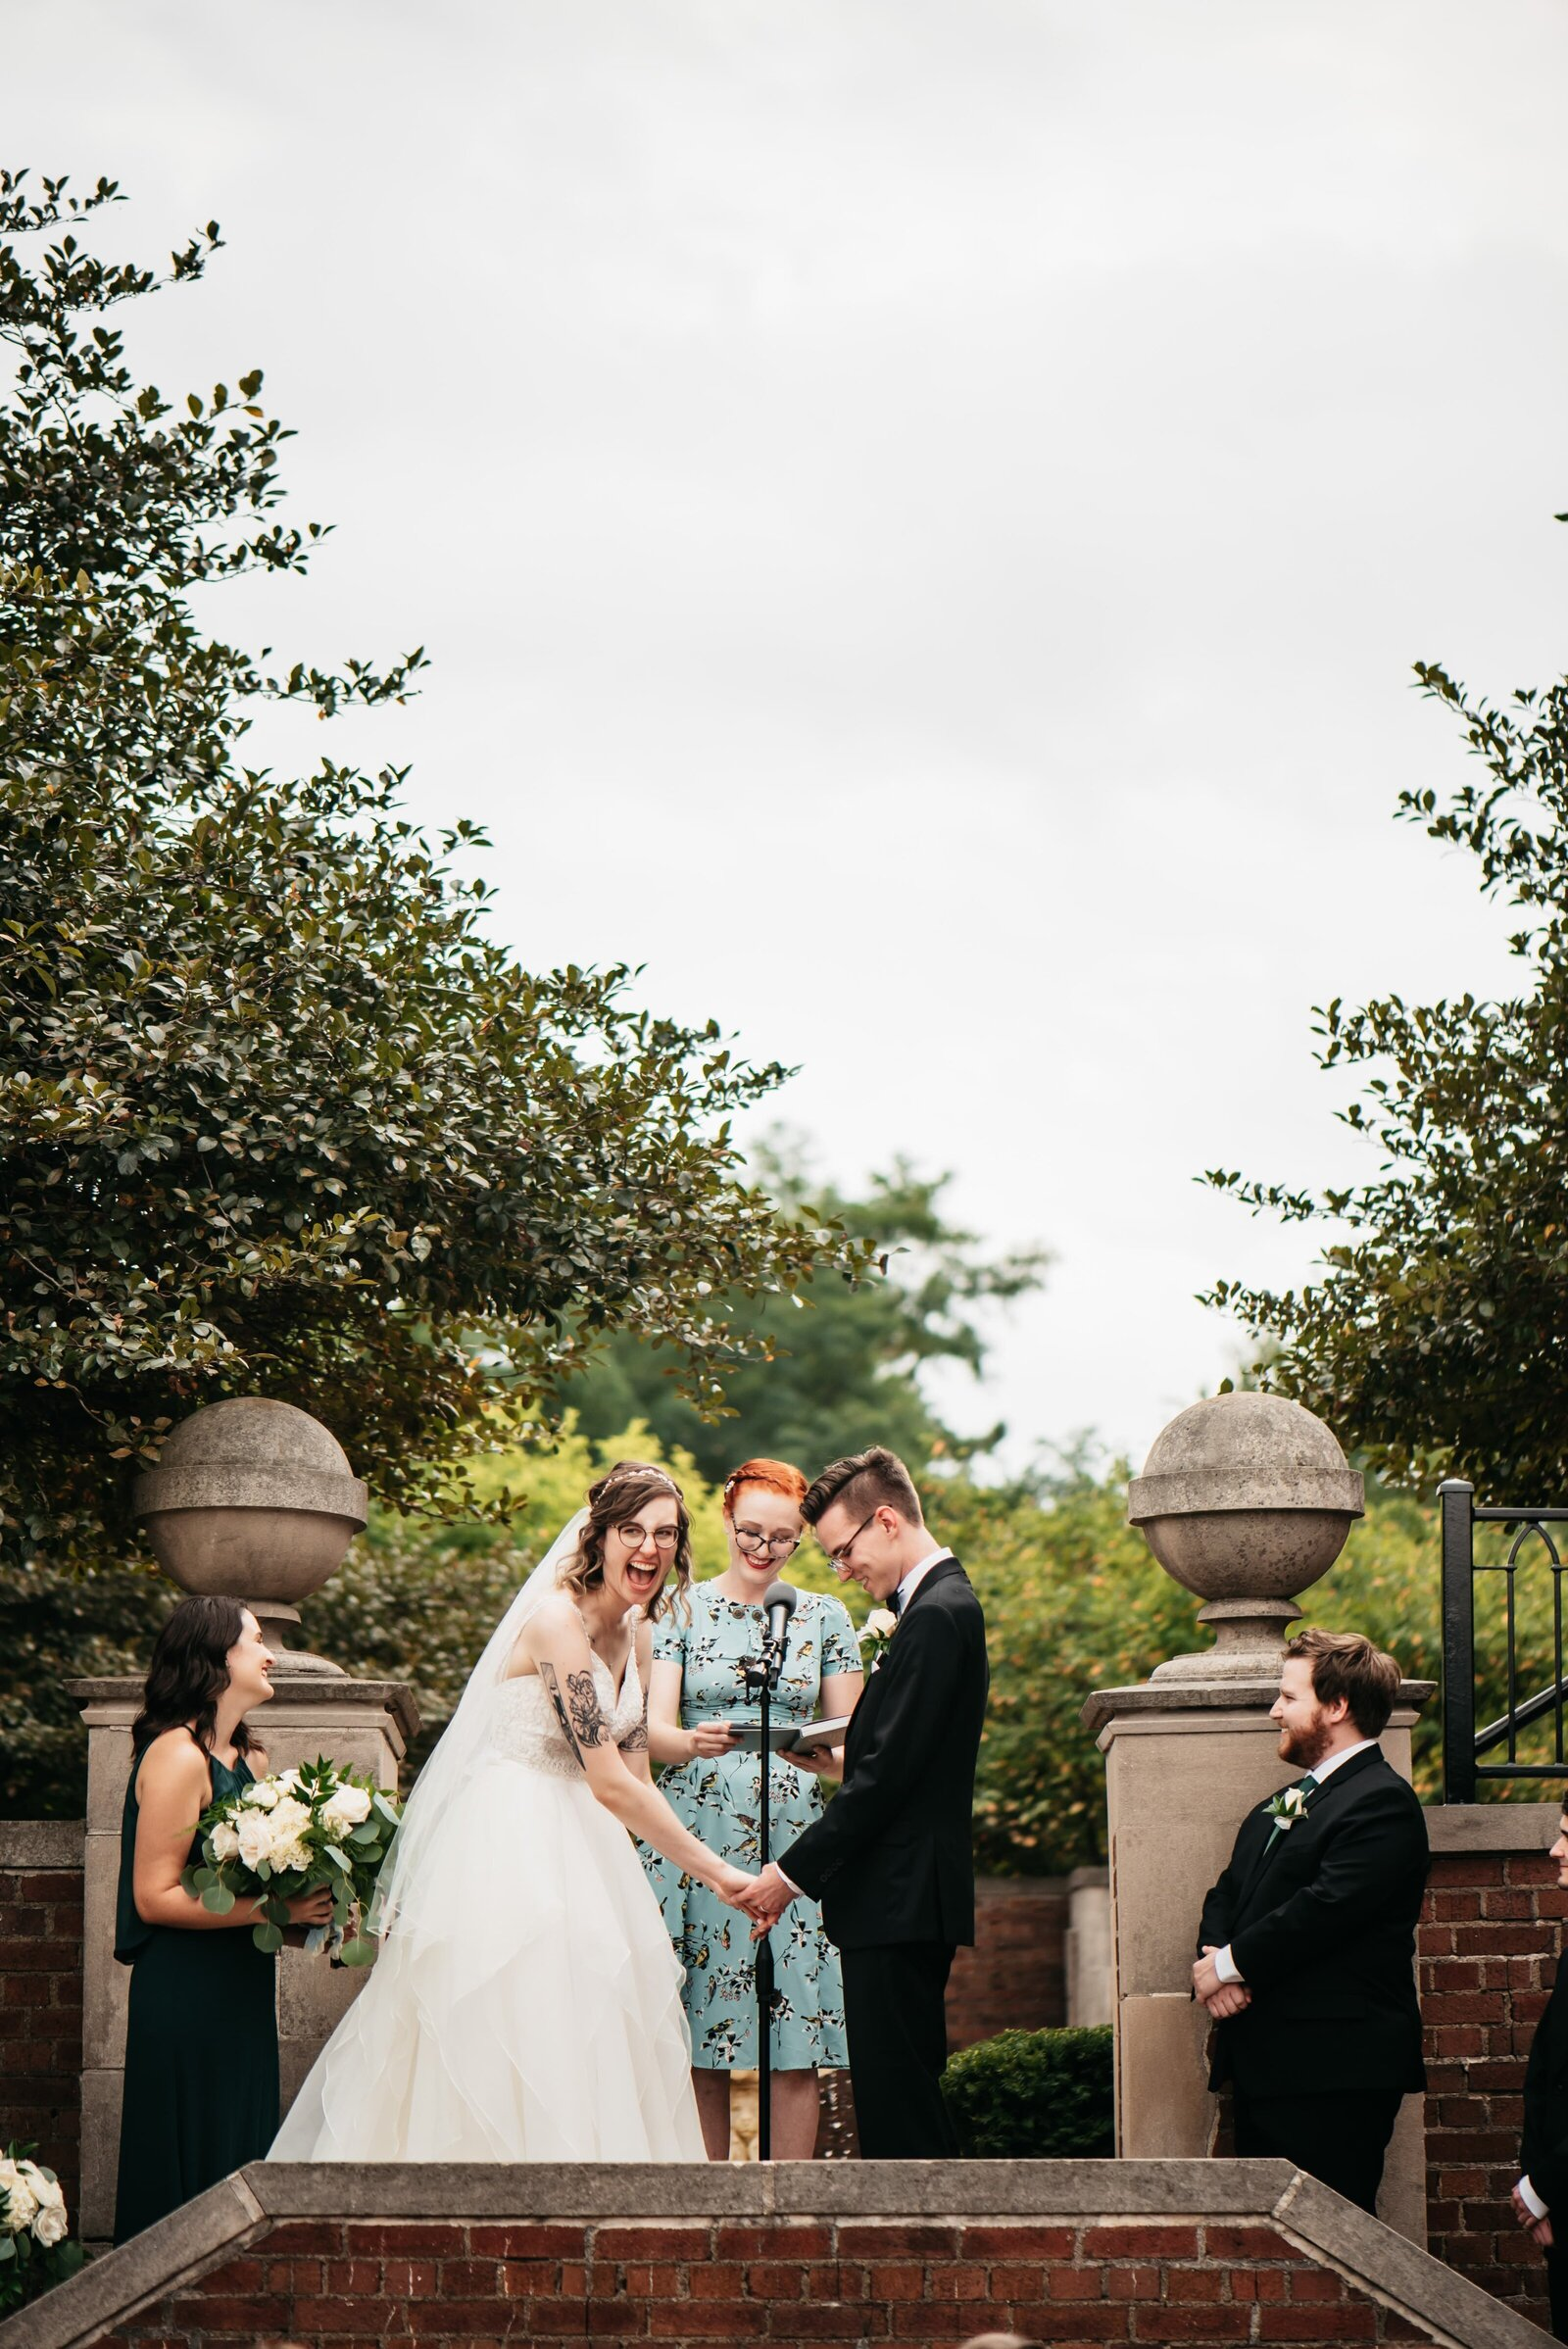 Rollins Mansion Des Moines Iowa Wedding Photographer-35-min